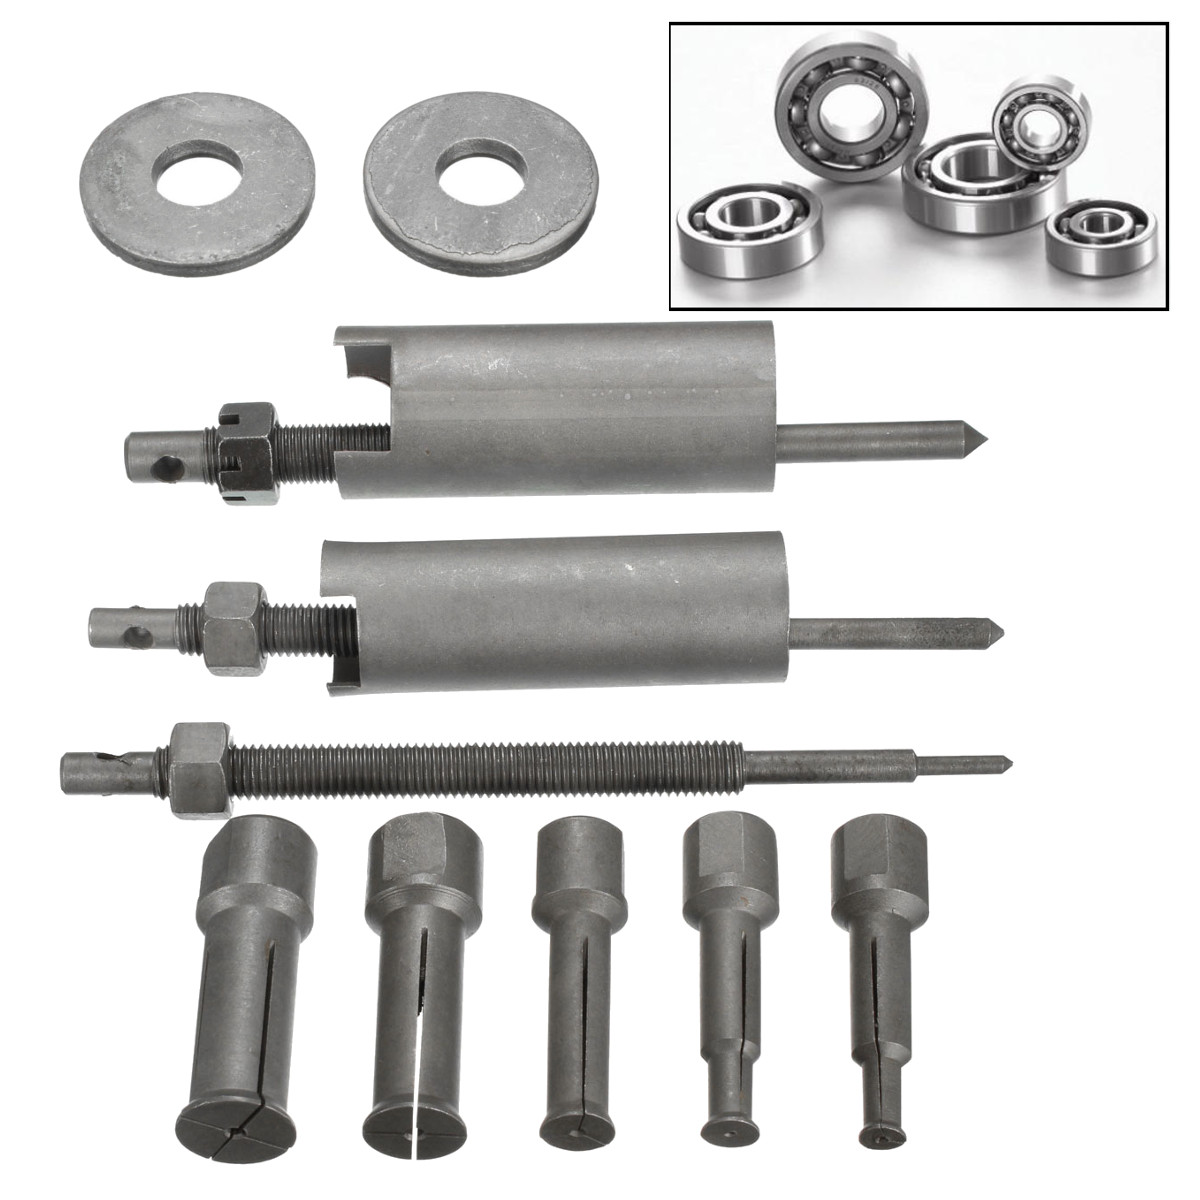 1 Set 9mm-23mm Diameter Inner Bearing Puller Tool Remover Kit For Auto Motorcycle Repair Tool